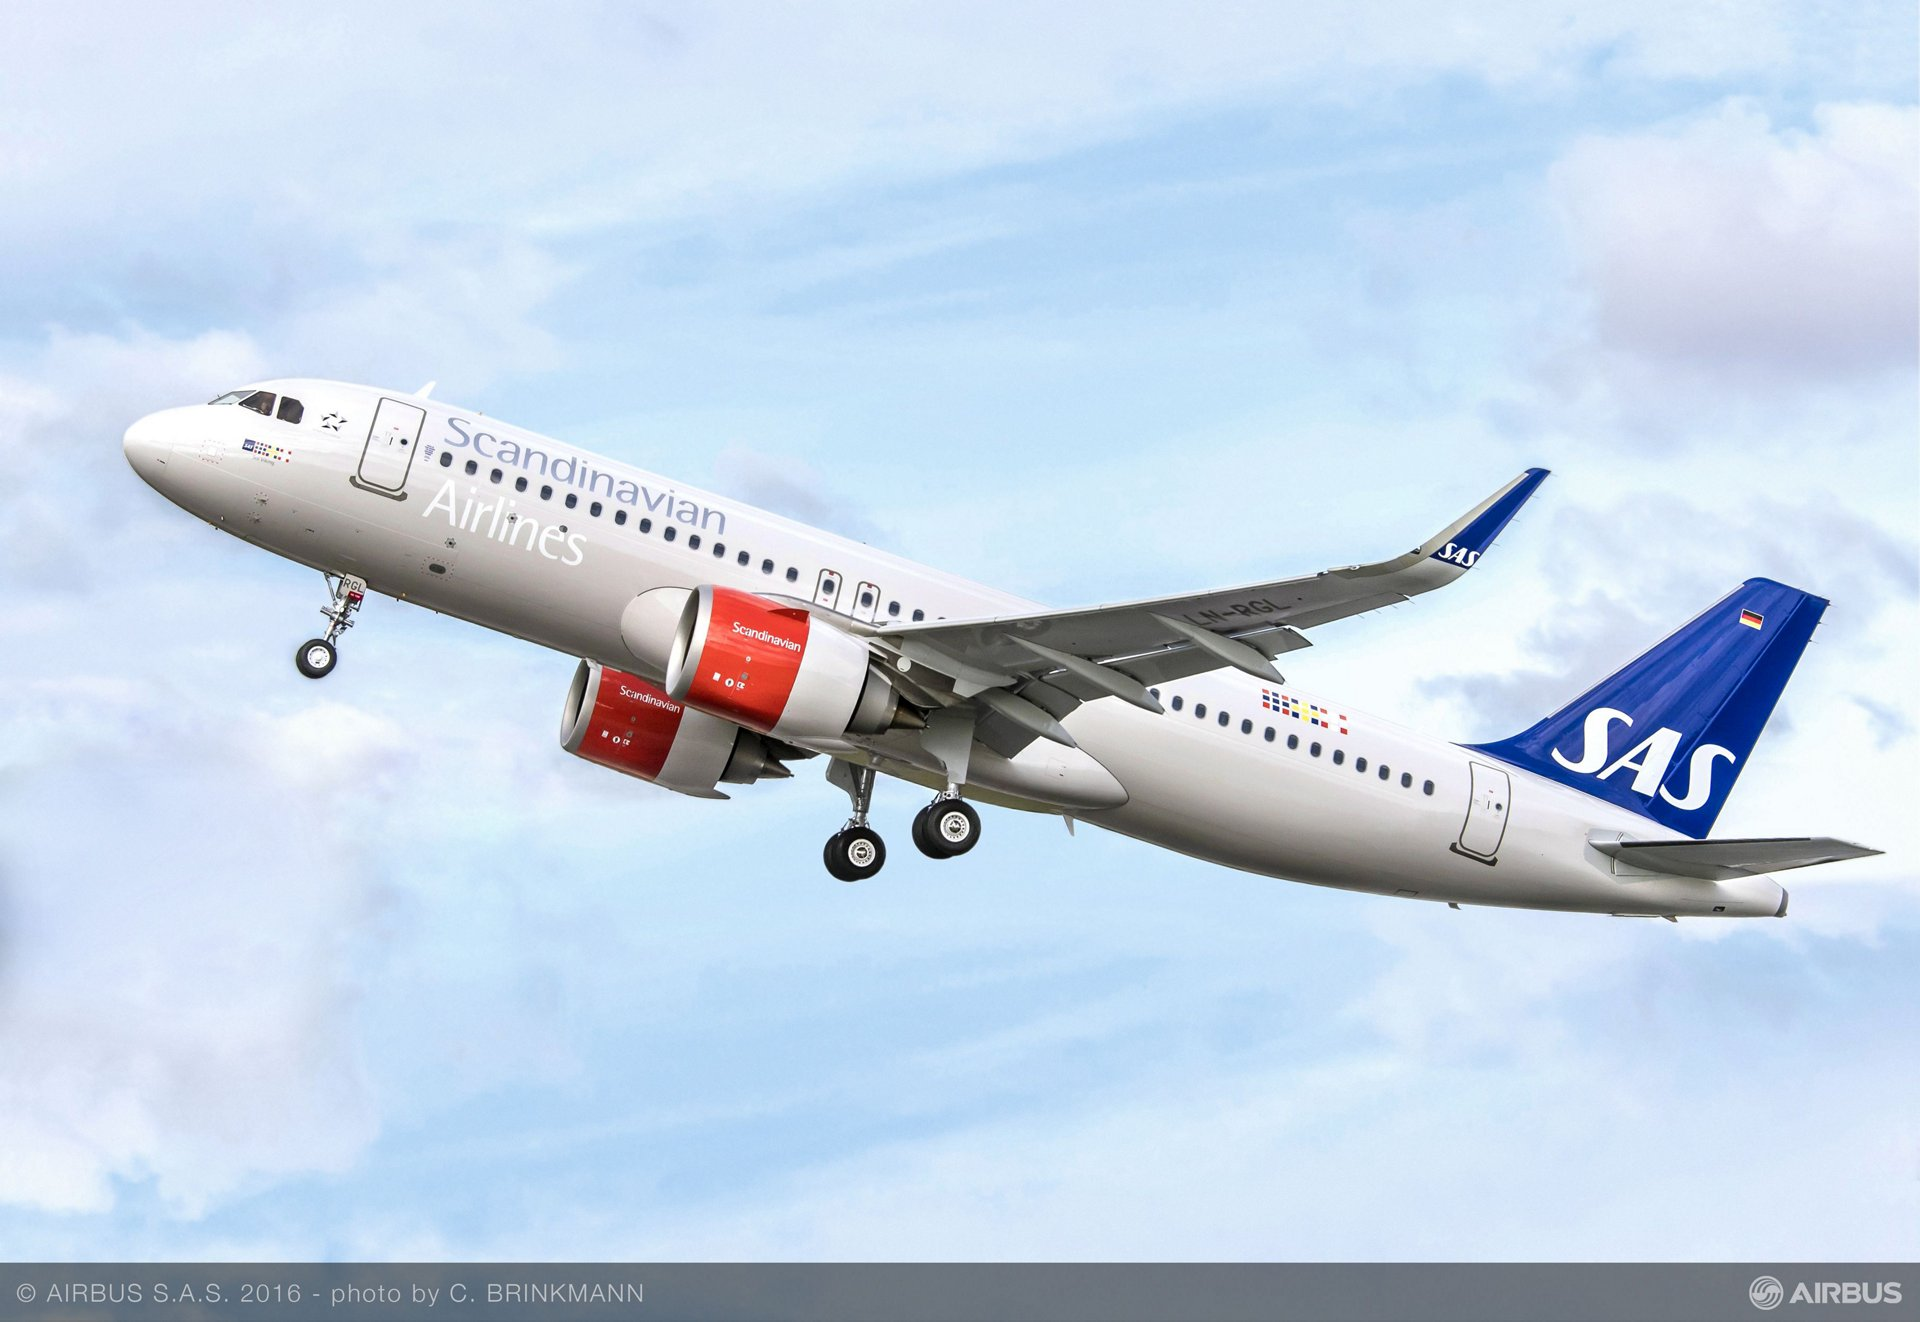 SAS Group's firm order for 35 A320neo aircraft and its lease of 15 additional A320neos will result in SAS becoming an all Airbus operator with the fuel-efficient A320 family for its mainline European operations, as well as for the carrier's extensive domestic services in Scandinavia